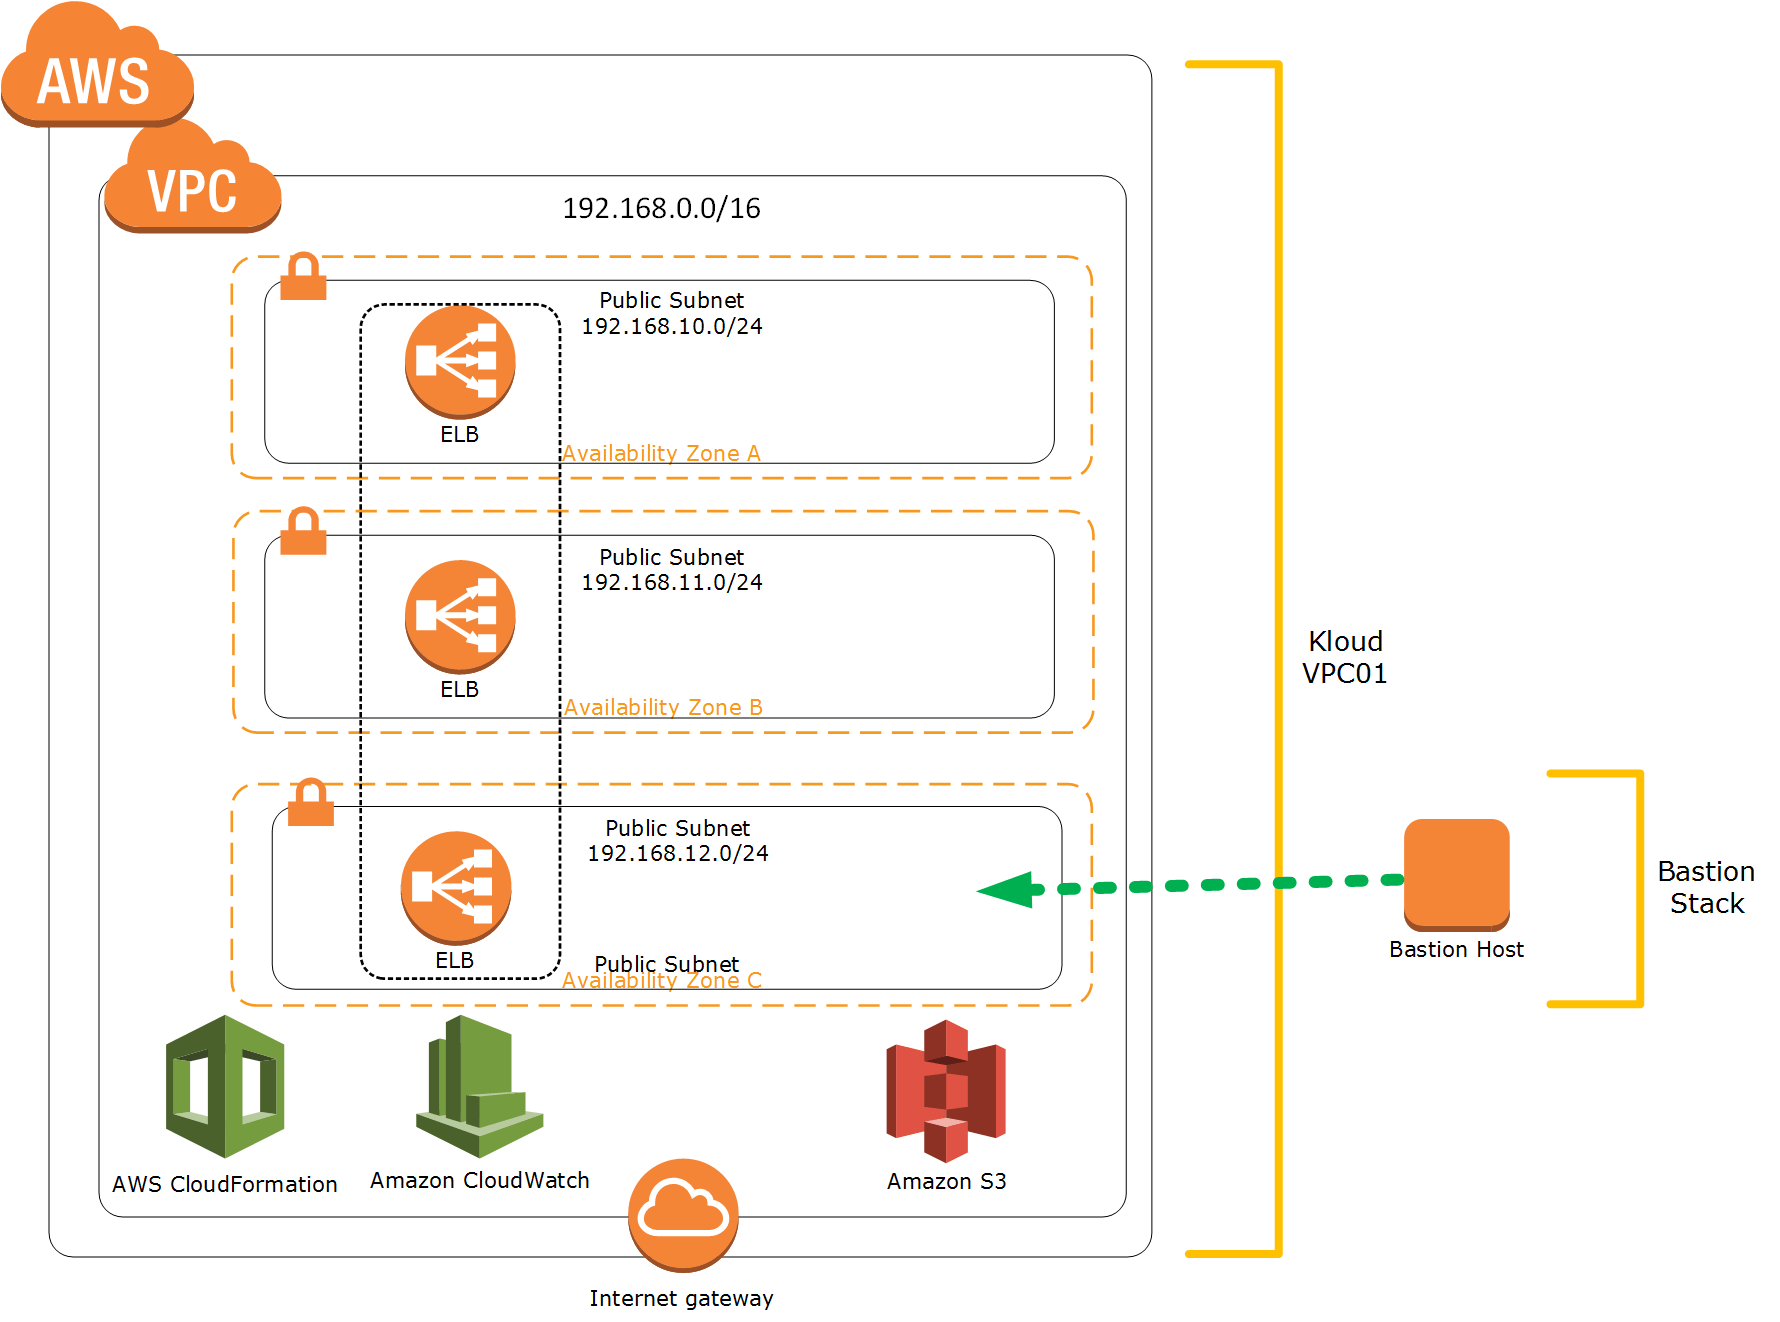 Automate your Cloud Operations Part 2: AWS CloudFormation